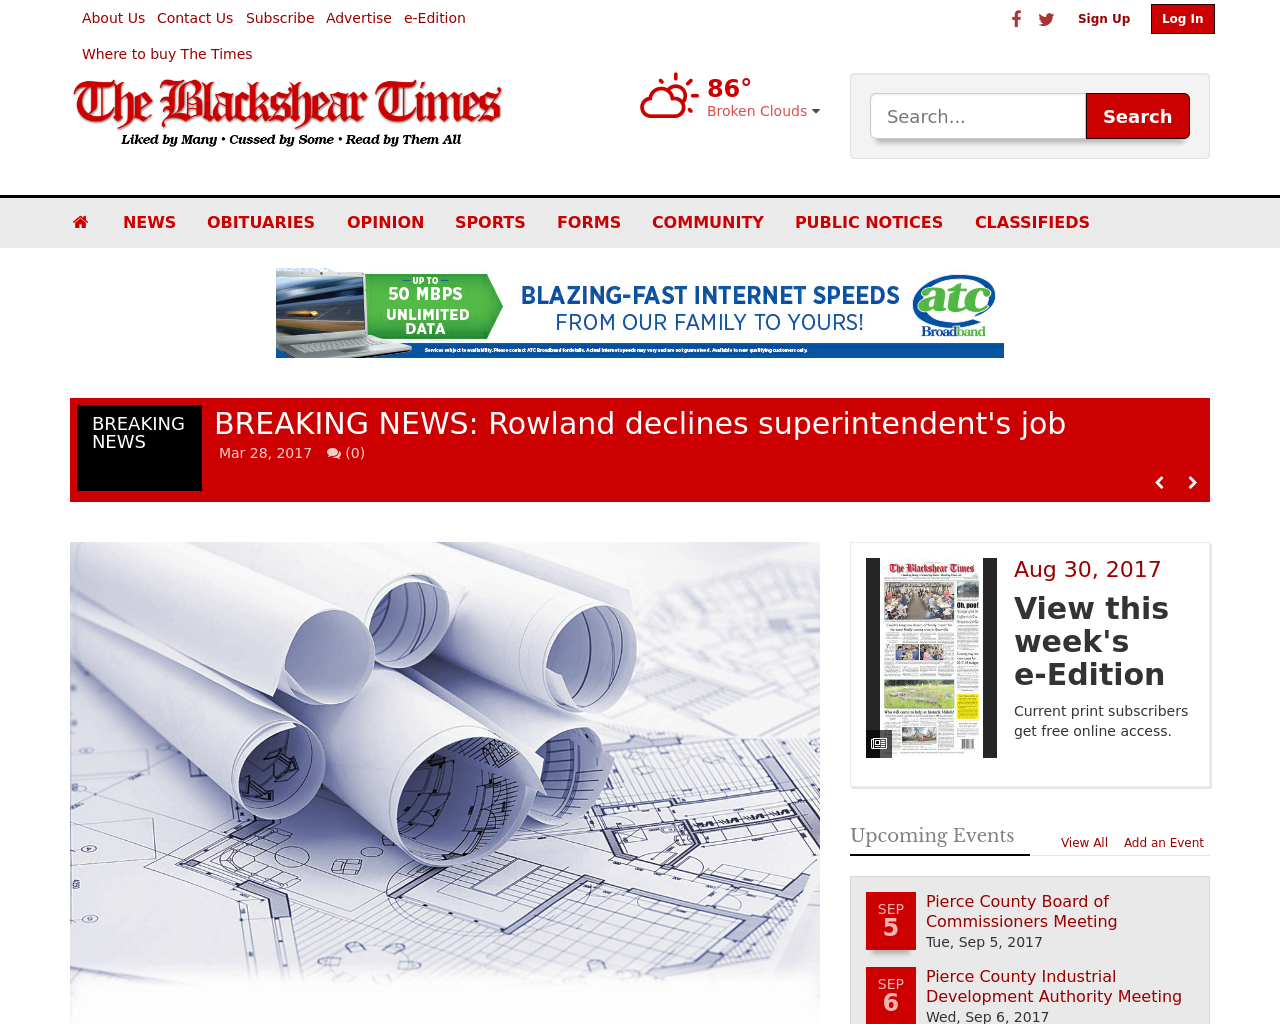 The-Blackshear-Times-Online-Edition-Advertising-Reviews-Pricing